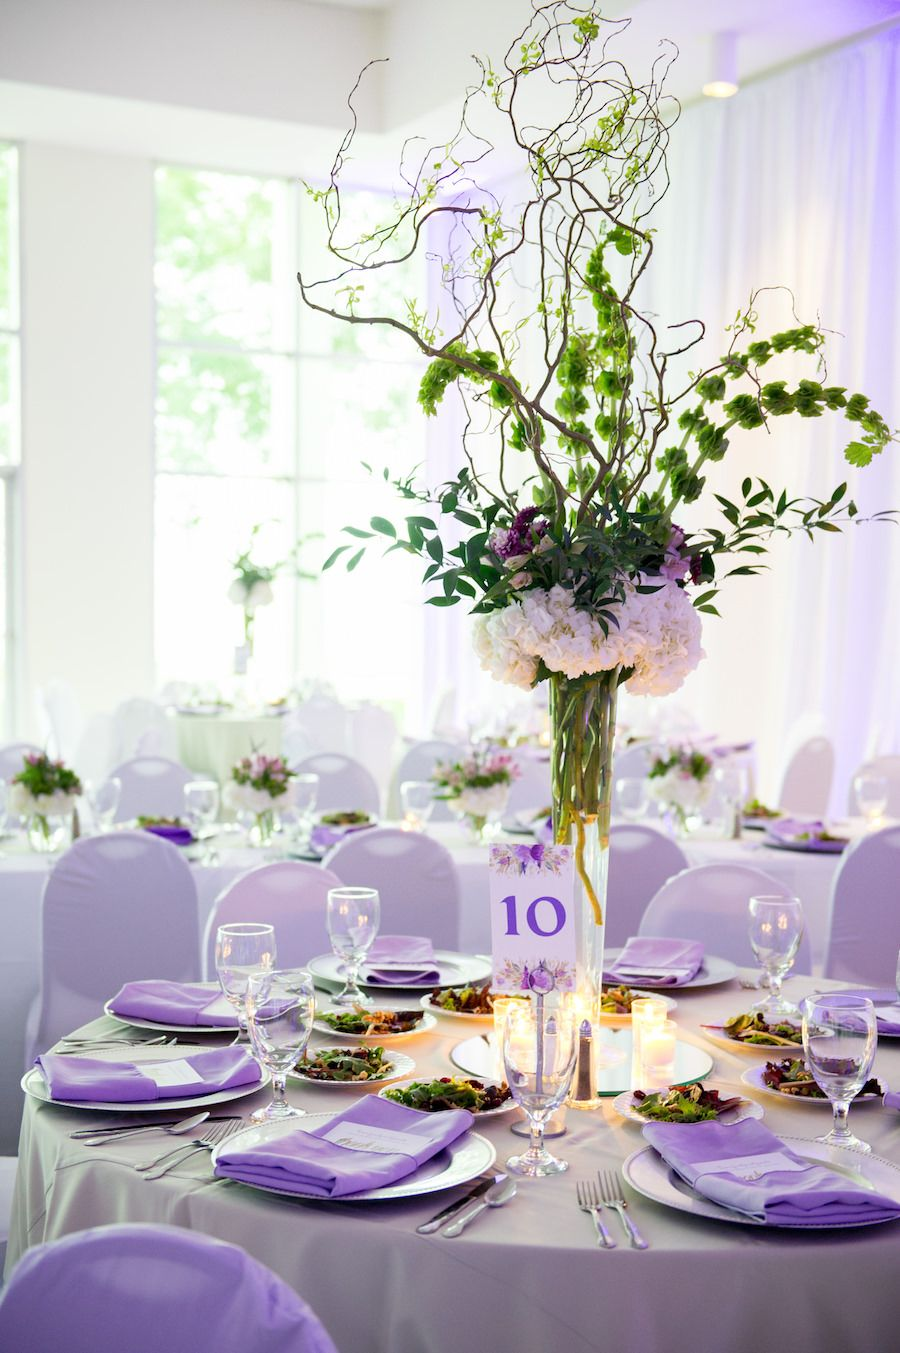 Whimsical Green and Lavender Tampa Wedding | Pinterest | Garden ...